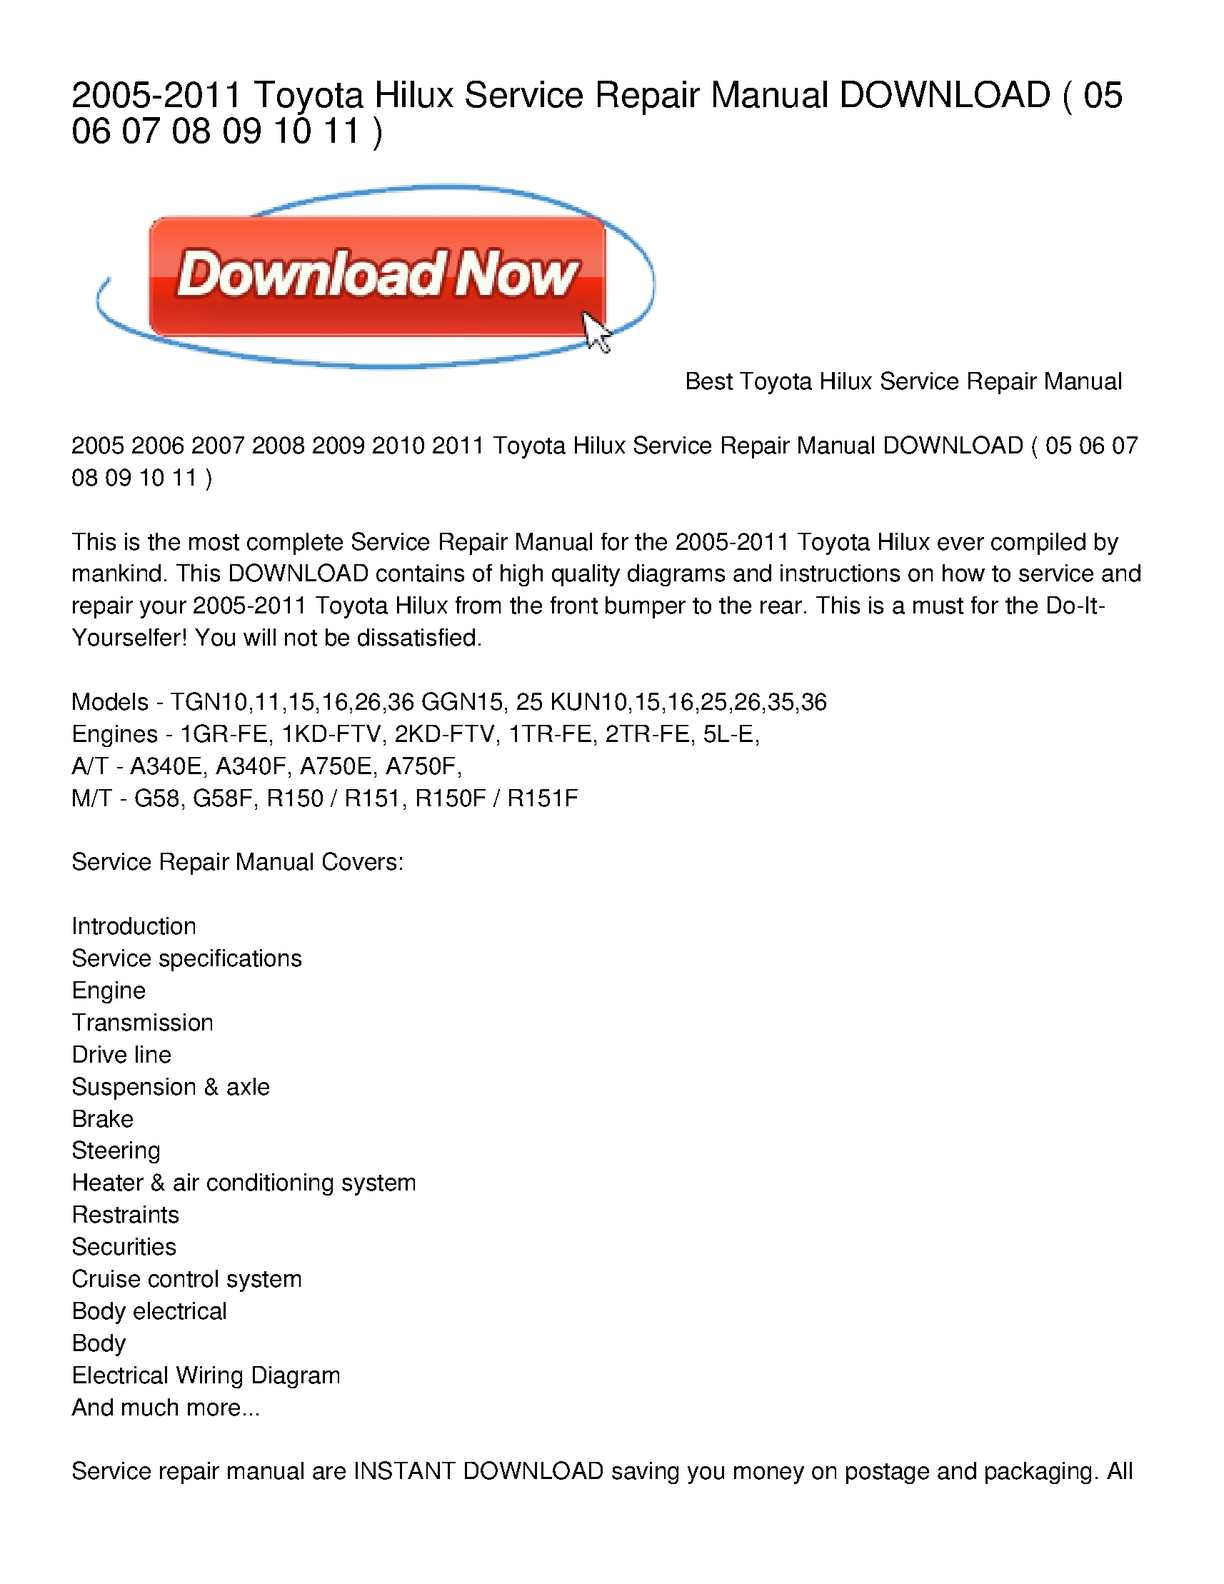 Calaméo - 2005-2011 Toyota Hilux Service Repair Manual DOWNLOAD on motor diagrams, hvac diagrams, troubleshooting diagrams, honda motorcycle repair diagrams, electrical diagrams, series and parallel circuits diagrams, engine diagrams, pinout diagrams, internet of things diagrams, switch diagrams, electronic circuit diagrams, snatch block diagrams, smart car diagrams, friendship bracelet diagrams, battery diagrams, transformer diagrams, lighting diagrams, sincgars radio configurations diagrams, led circuit diagrams, gmc fuse box diagrams,